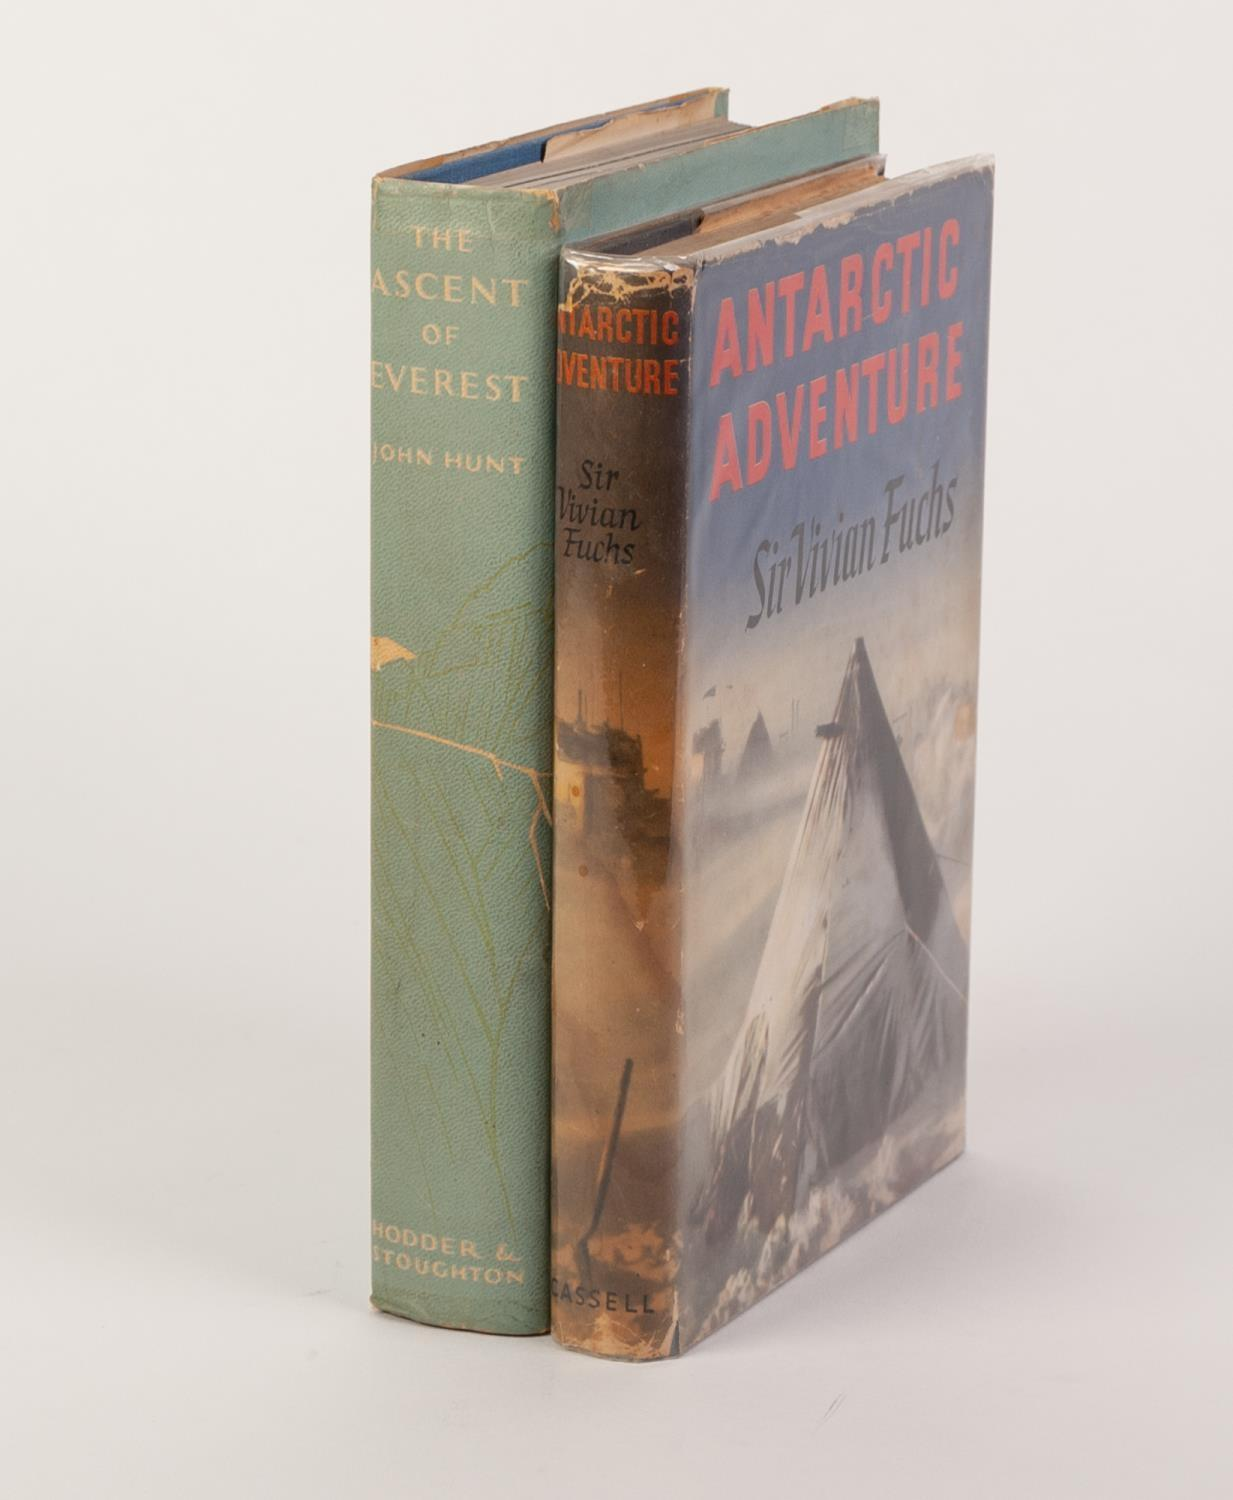 Lot 76 - TRAVEL EXPLORATION- John Hunt- The Ascent of Everest, published by Hodder and Stoughton 1953 1st Ed,